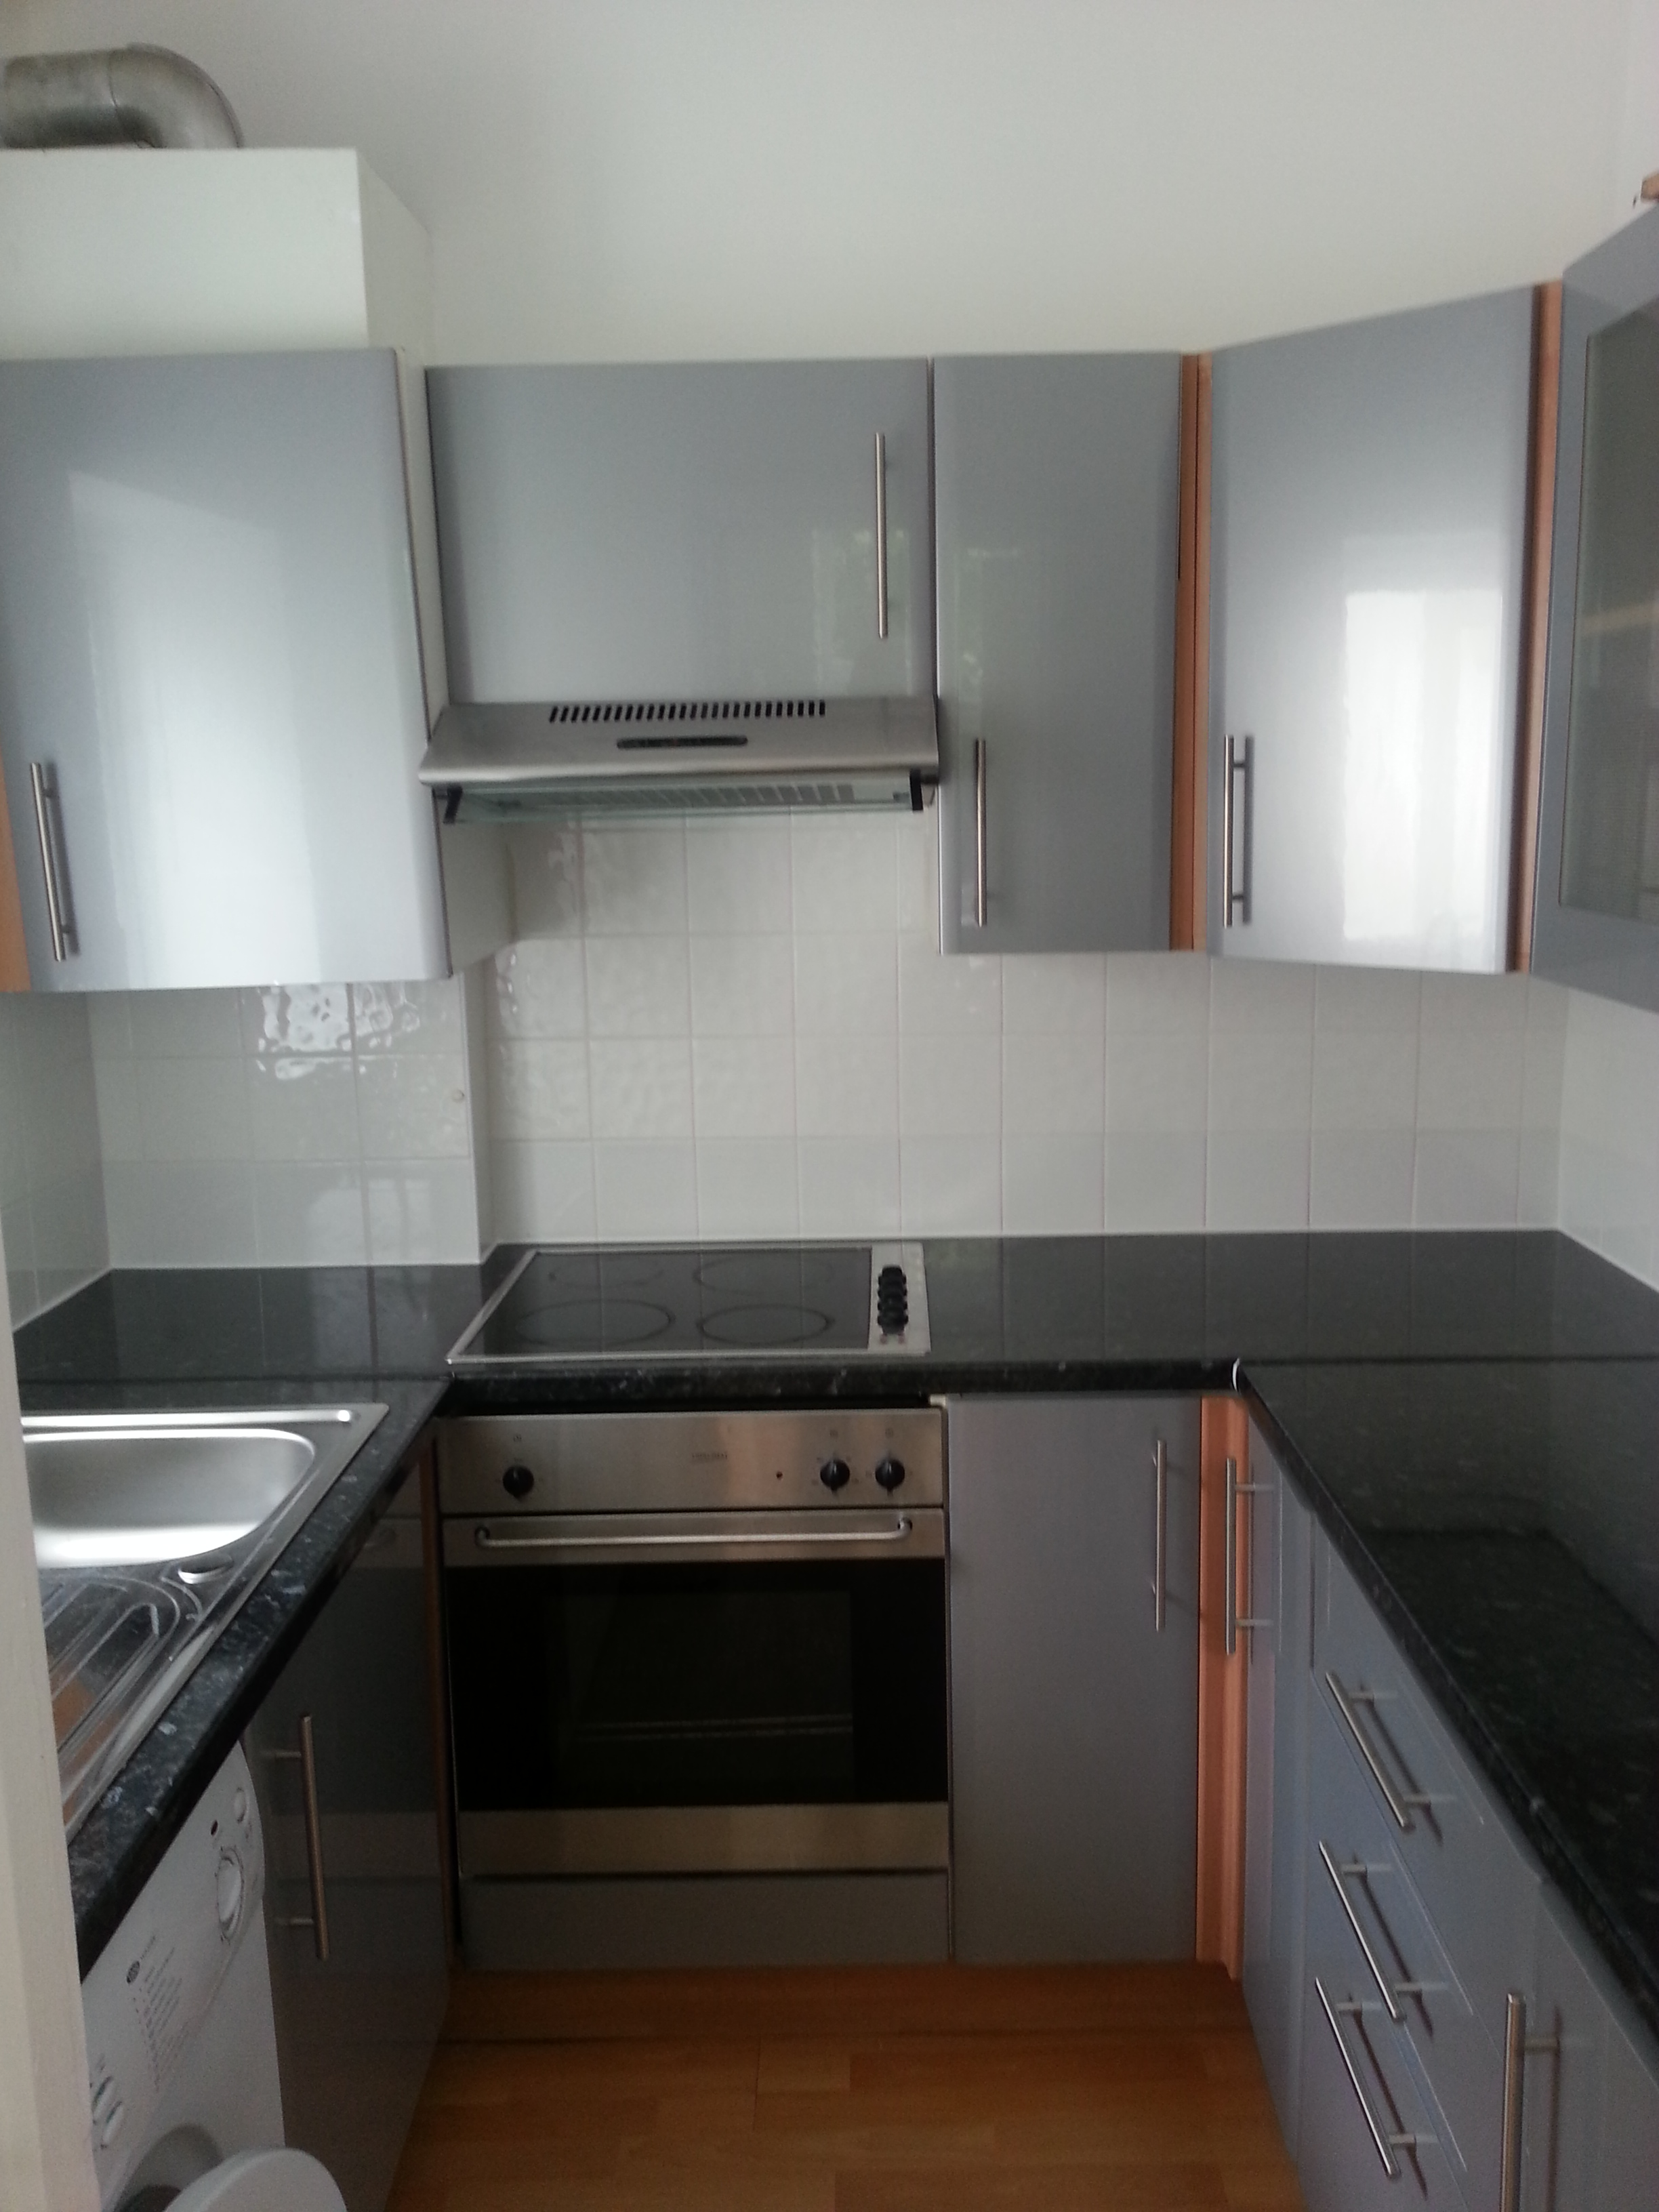 1 Bed Flat To Rent Brecknock Road London N7 0bx